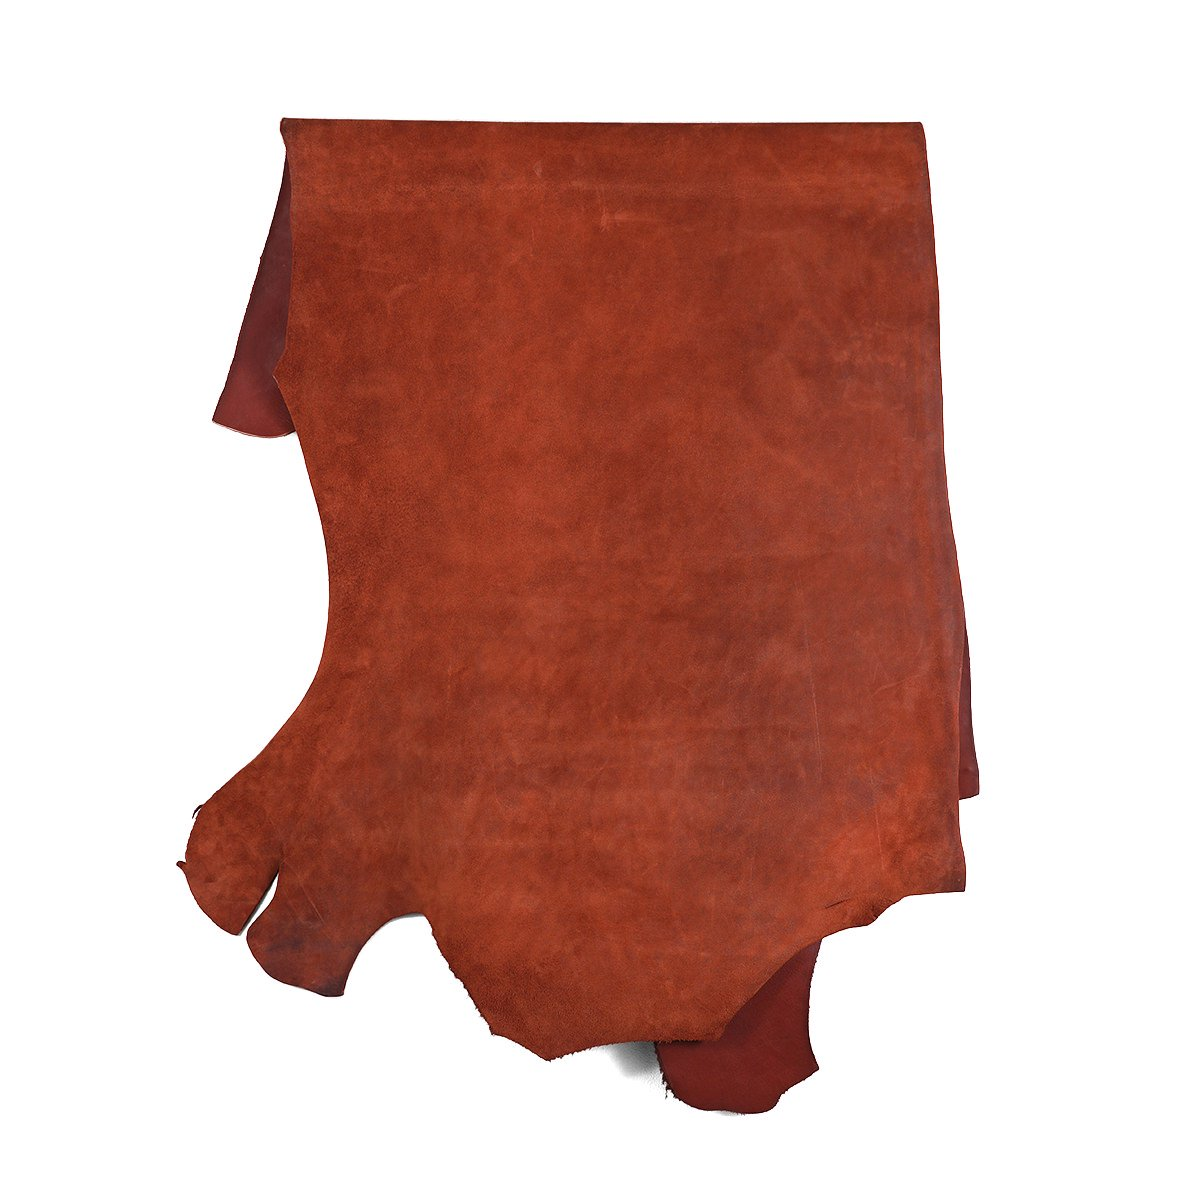 HORWEEN LEATHER COMPANY CALICO SUEDE RUST 詳細画像1